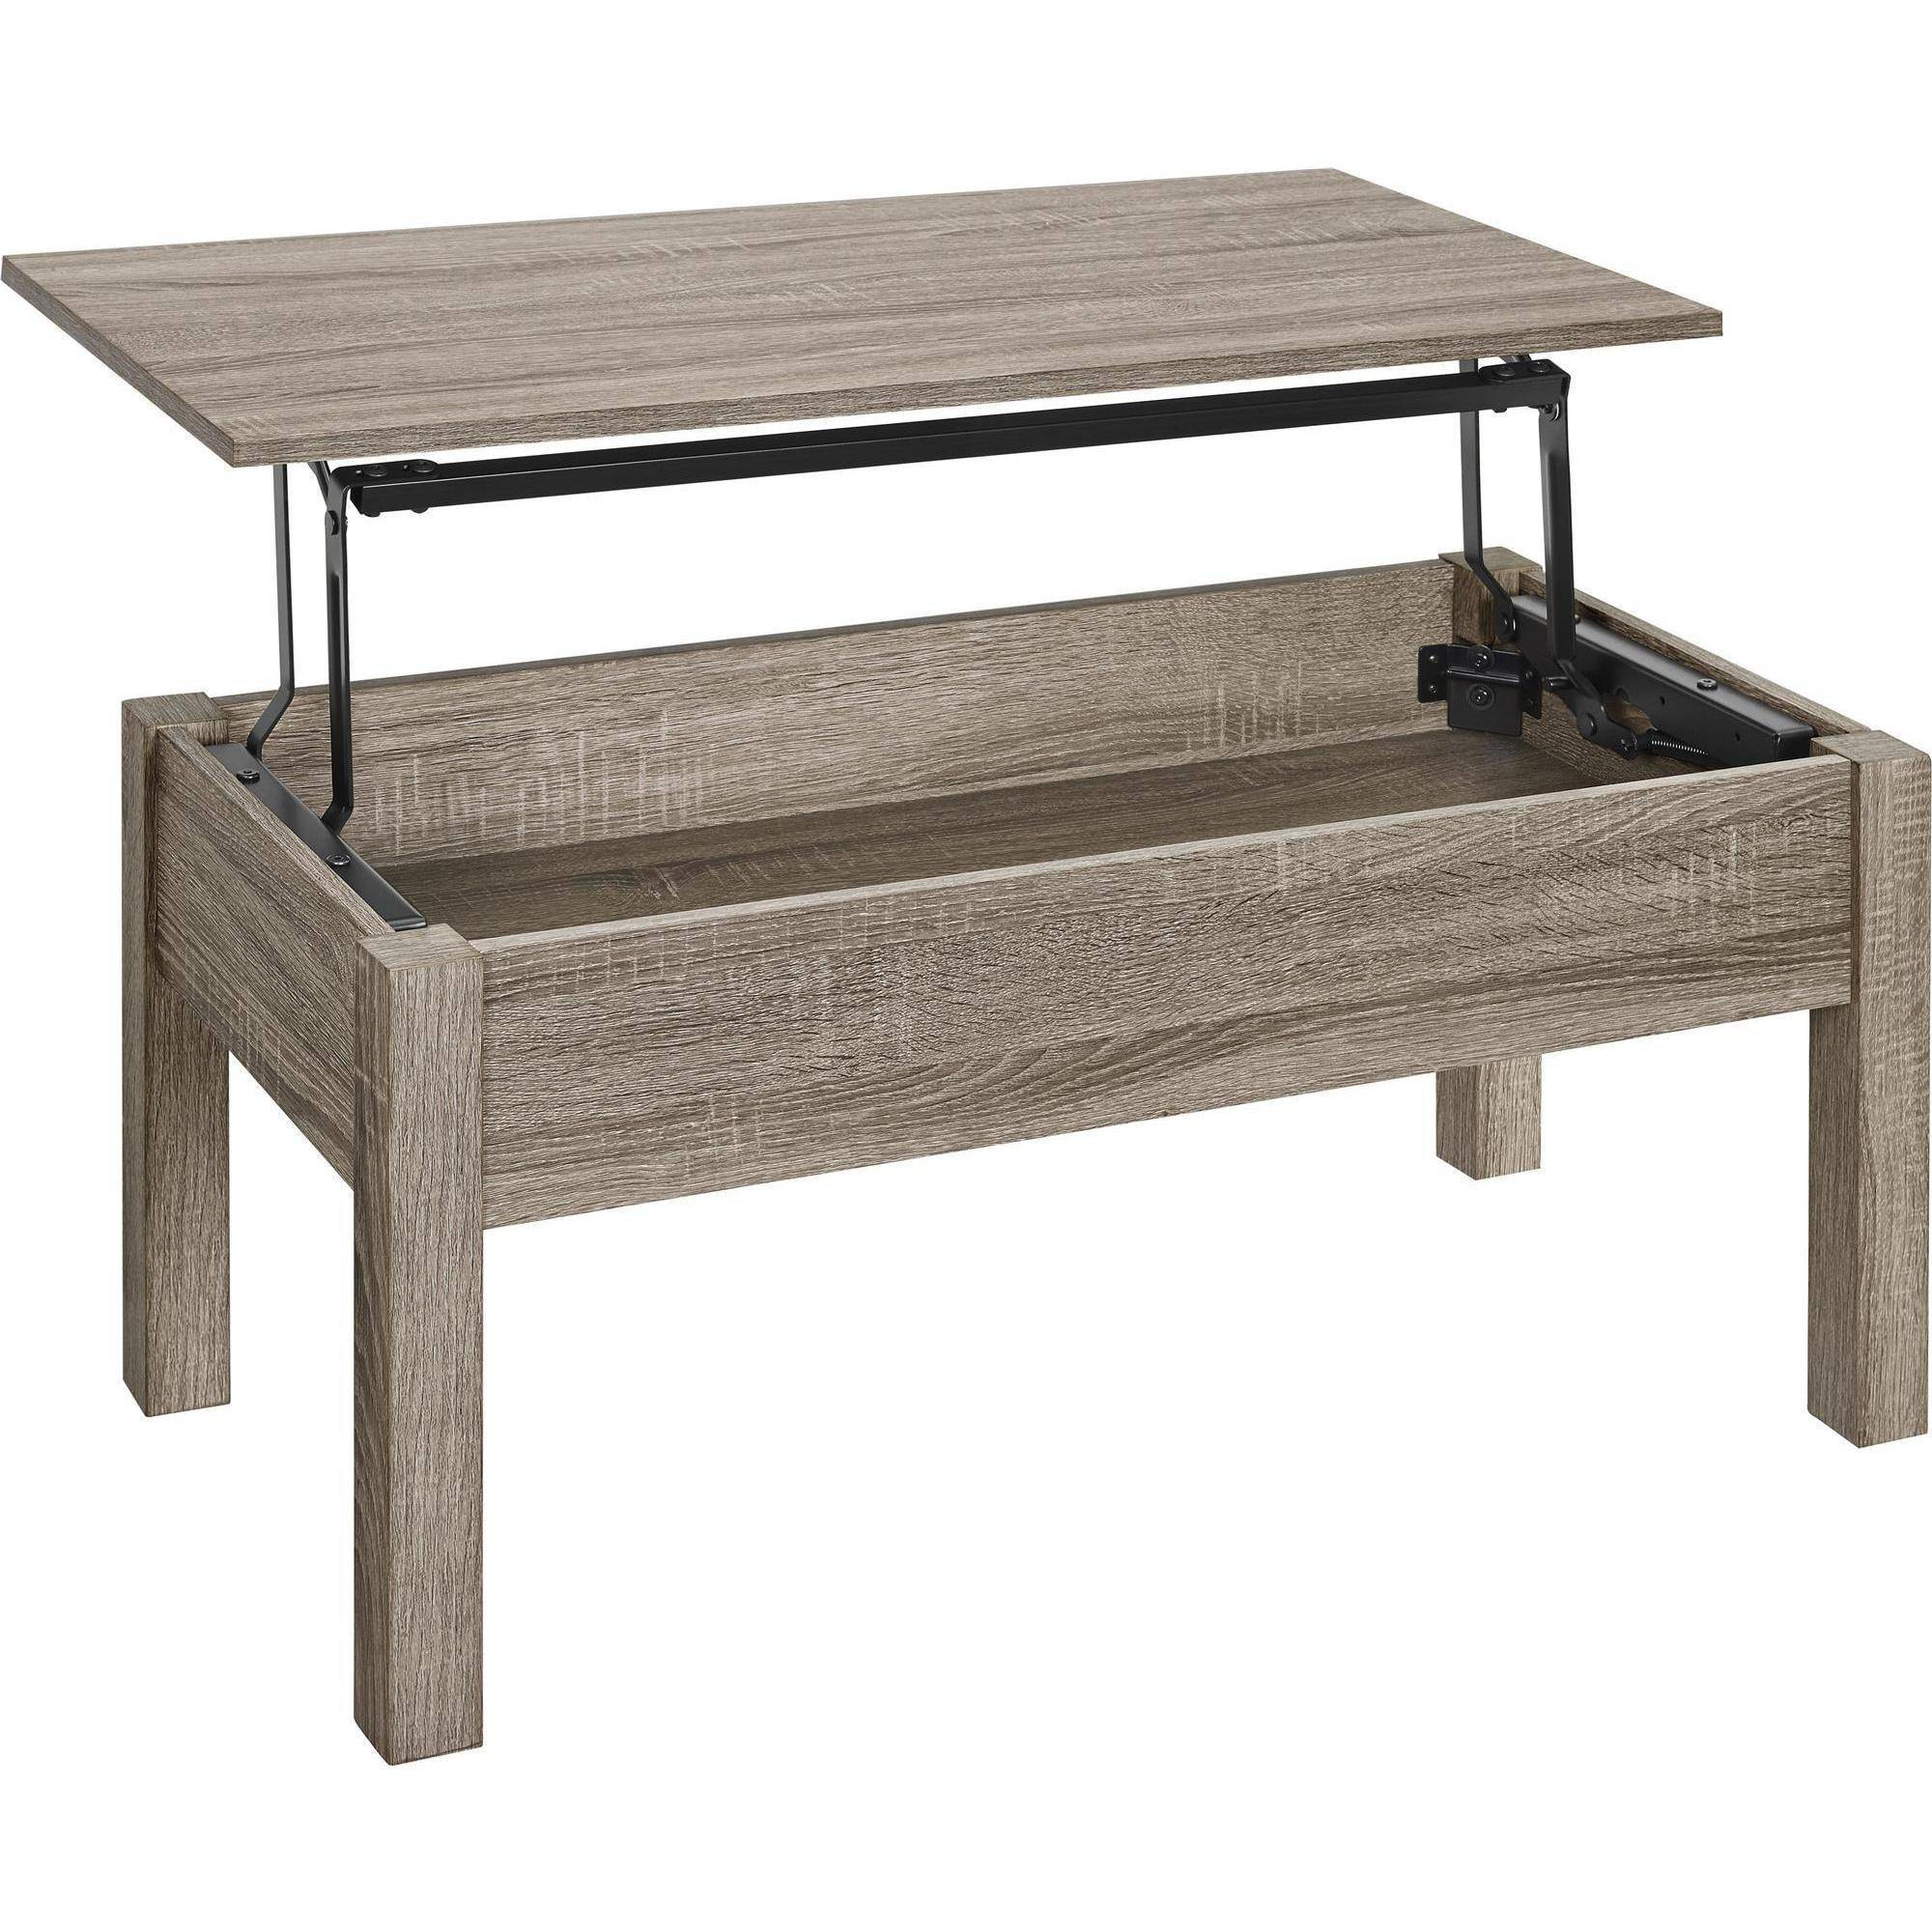 lift top coffee table mainstays lift-top coffee table, multiple colors - walmart.com MHLTKMN